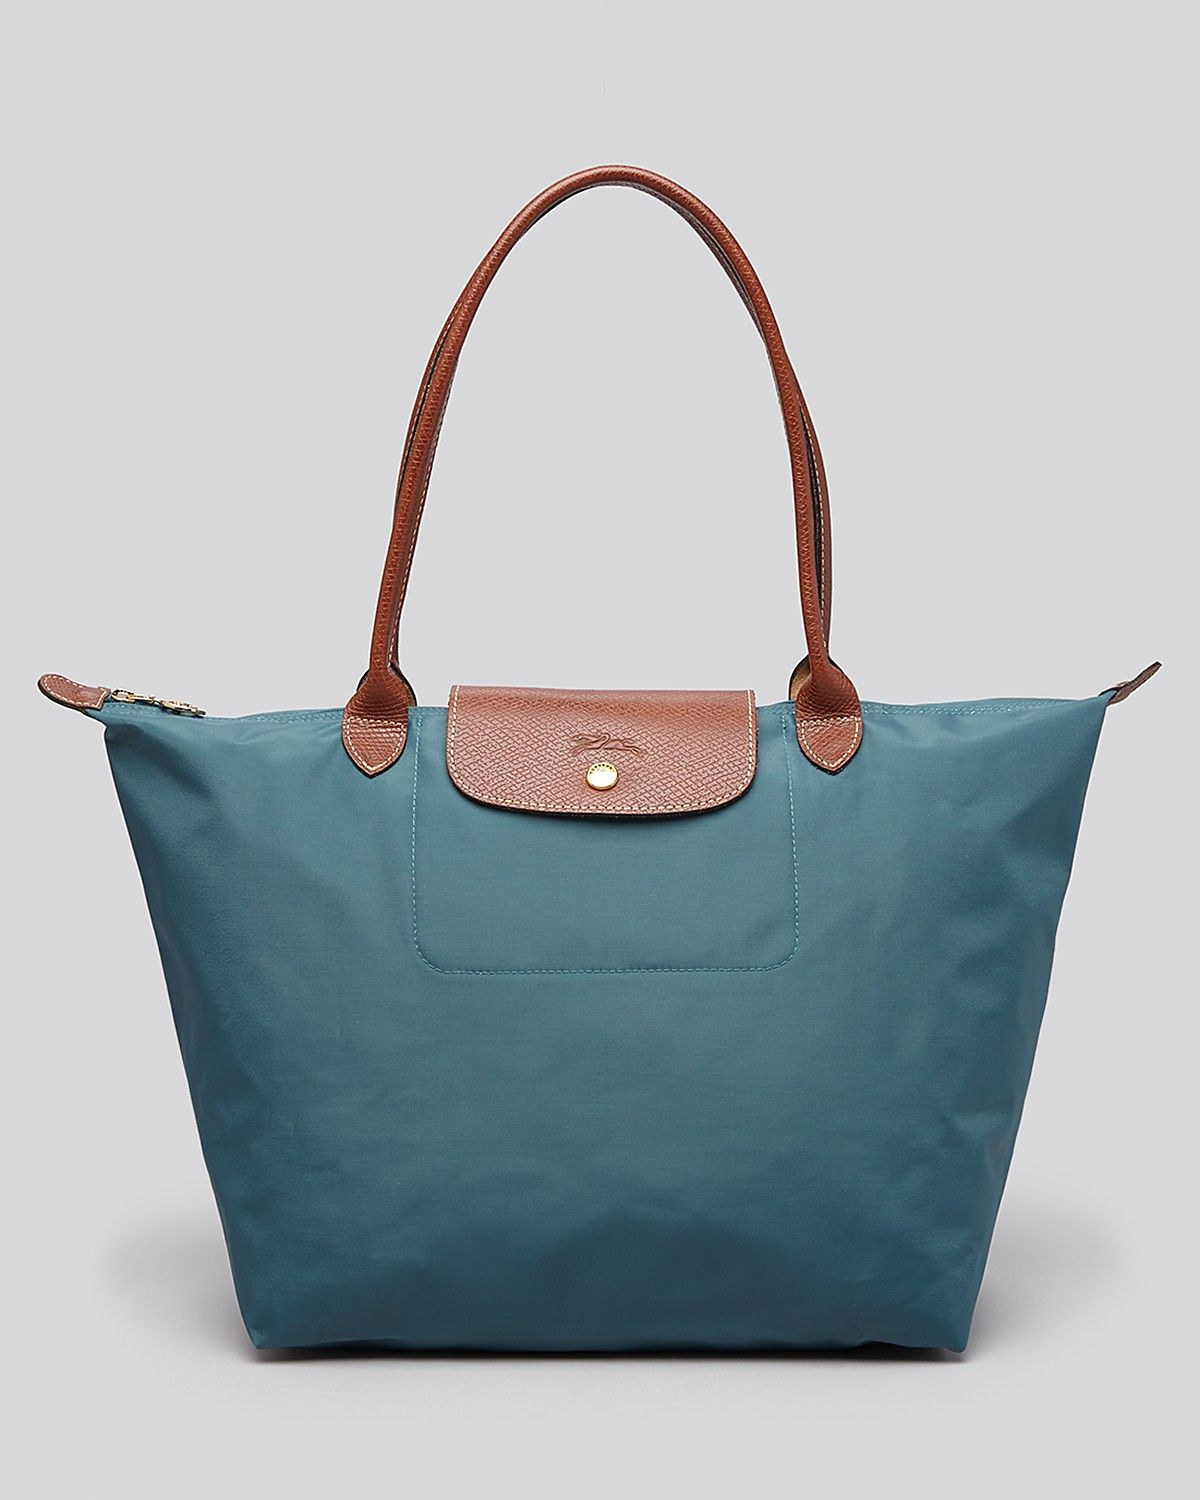 bce6c2b7ed Longchamp Tote - Le Pliage Large Shoulder | Bloomingdale's $145 in Mint  color. 9